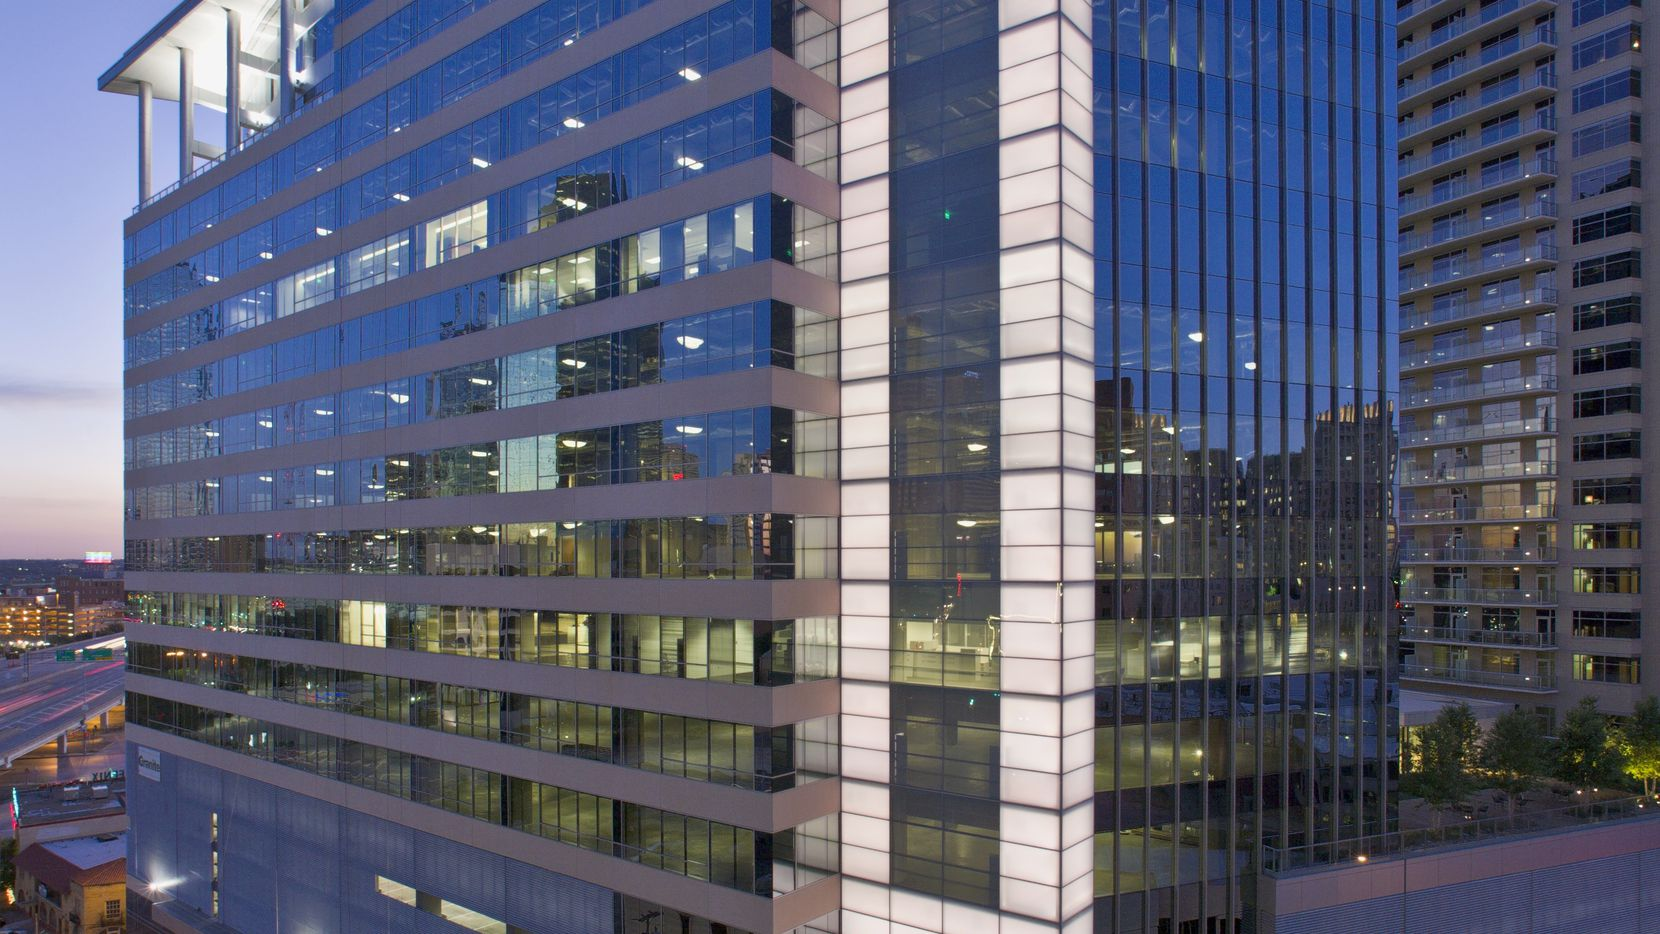 The 17Seventeen McKinney tower is expected to sell for $188 million or $510 per square foot